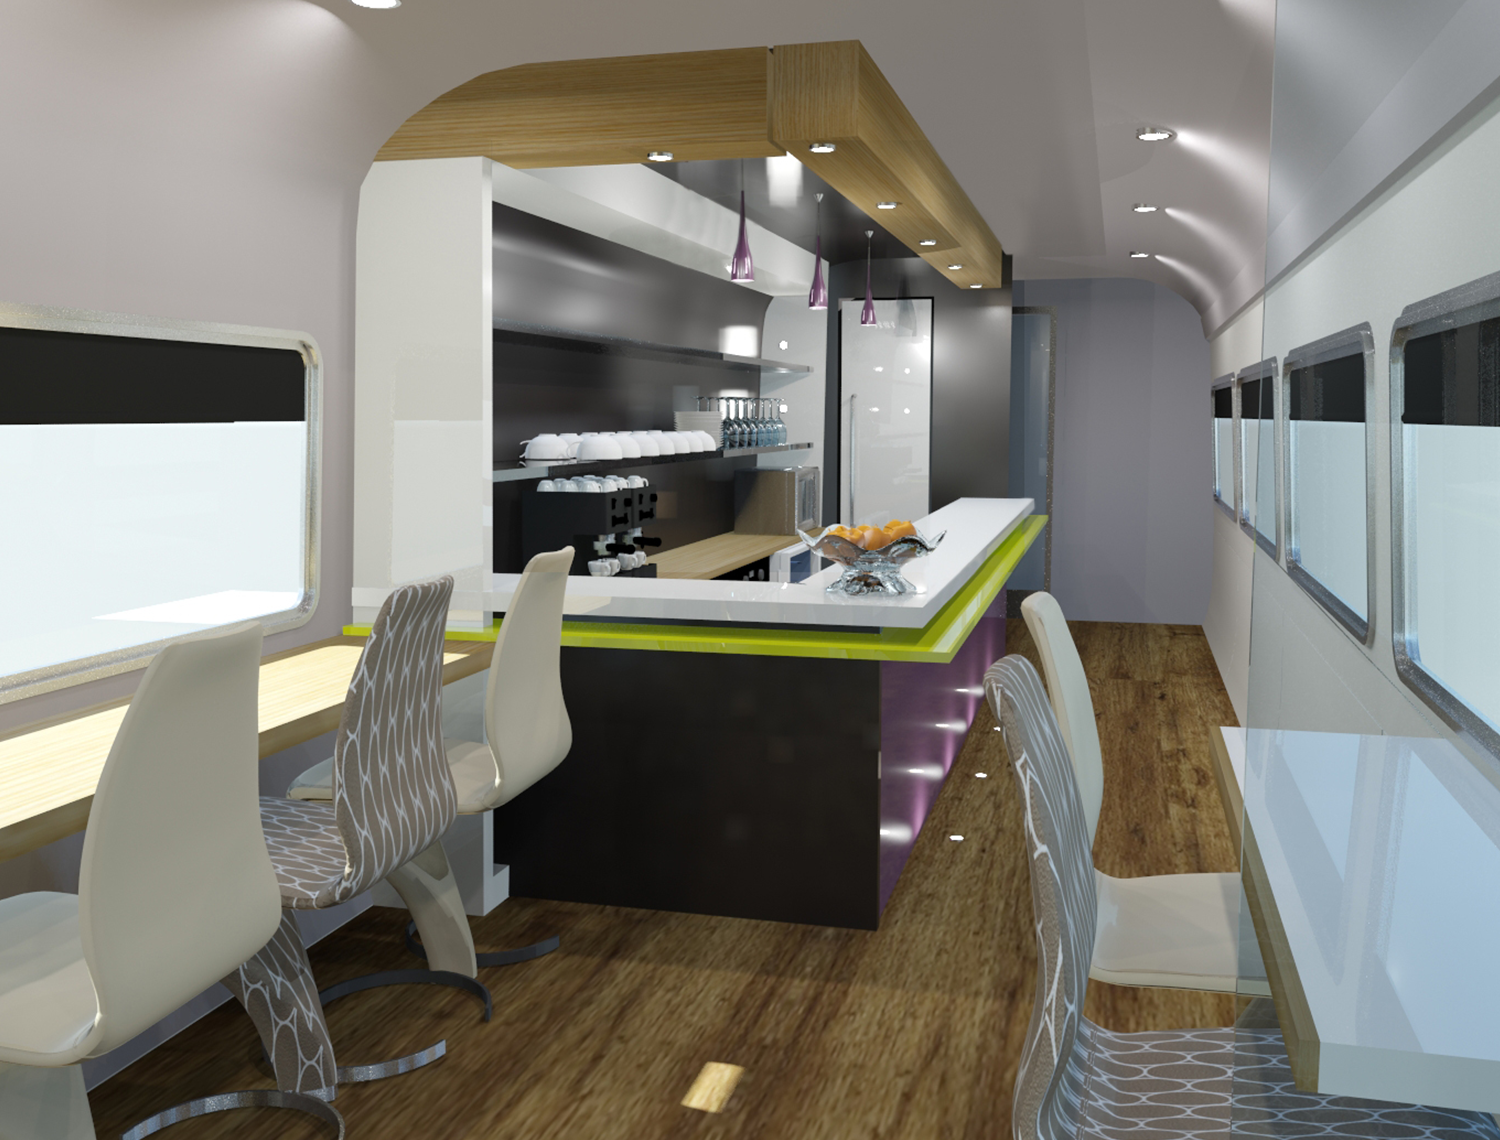 Sleeper Train Concepts Dg8 Design And Engineering